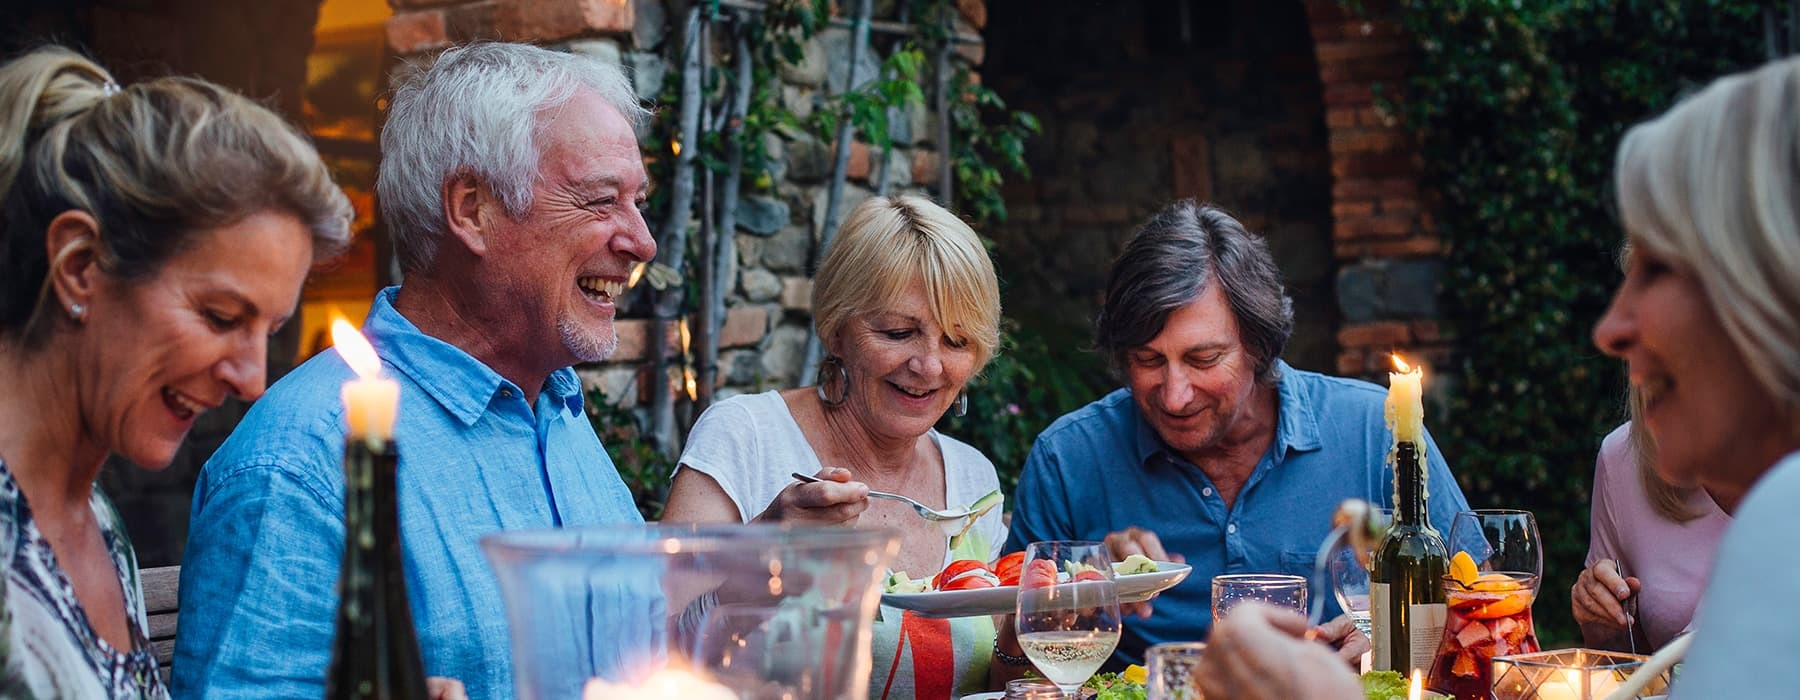 lifestyle image of a group of people laughing over a meal